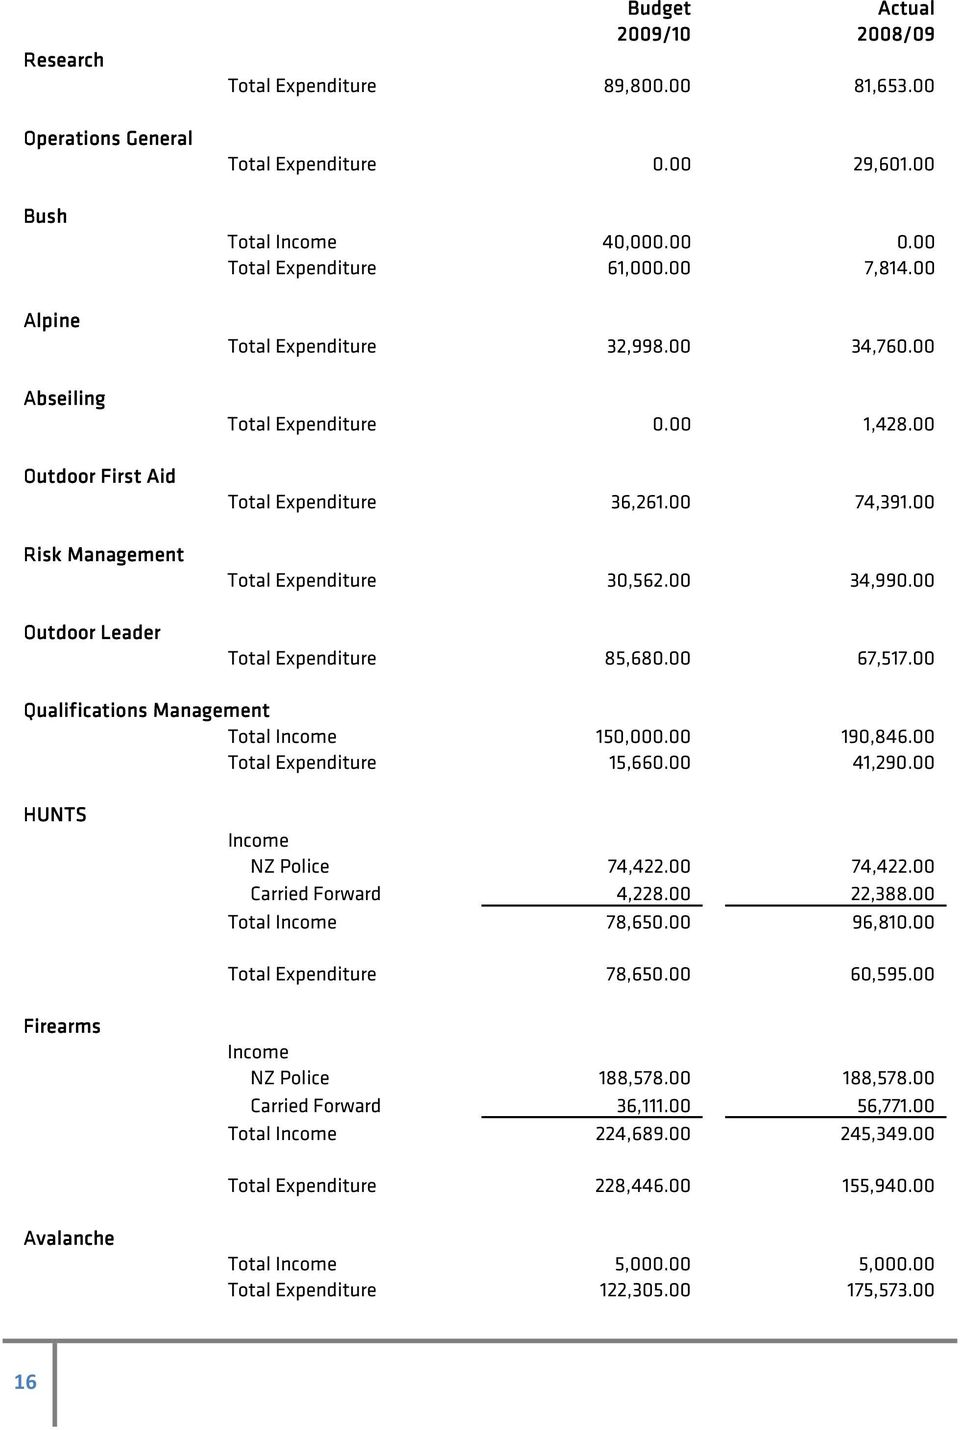 00 Total Expenditure 30,562.00 34,990.00 Total Expenditure 85,680.00 67,517.00 Qualifications Management Total Income 150,000.00 190,846.00 Total Expenditure 15,660.00 41,290.